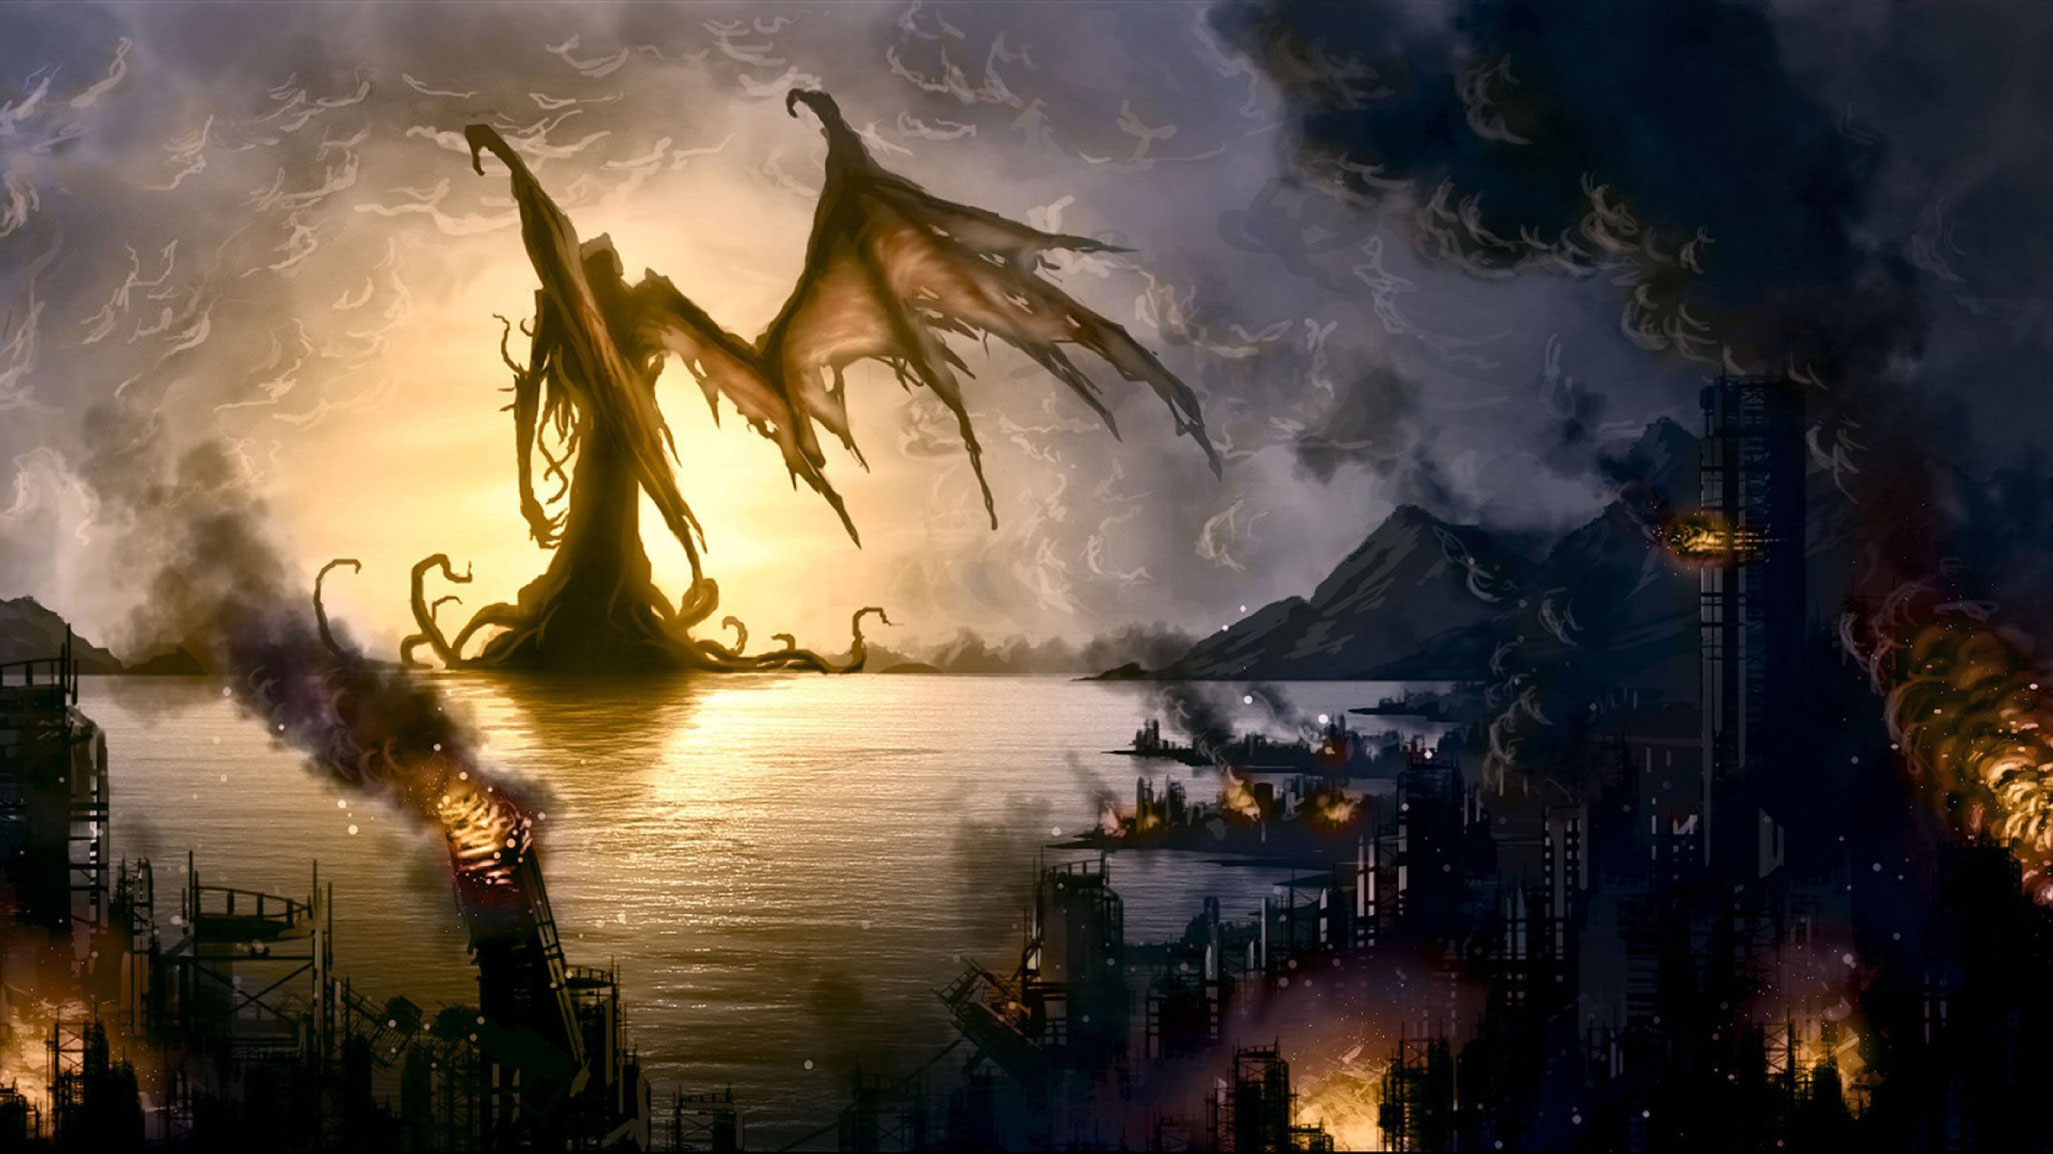 Cthulhu departs burning city by unknown artist